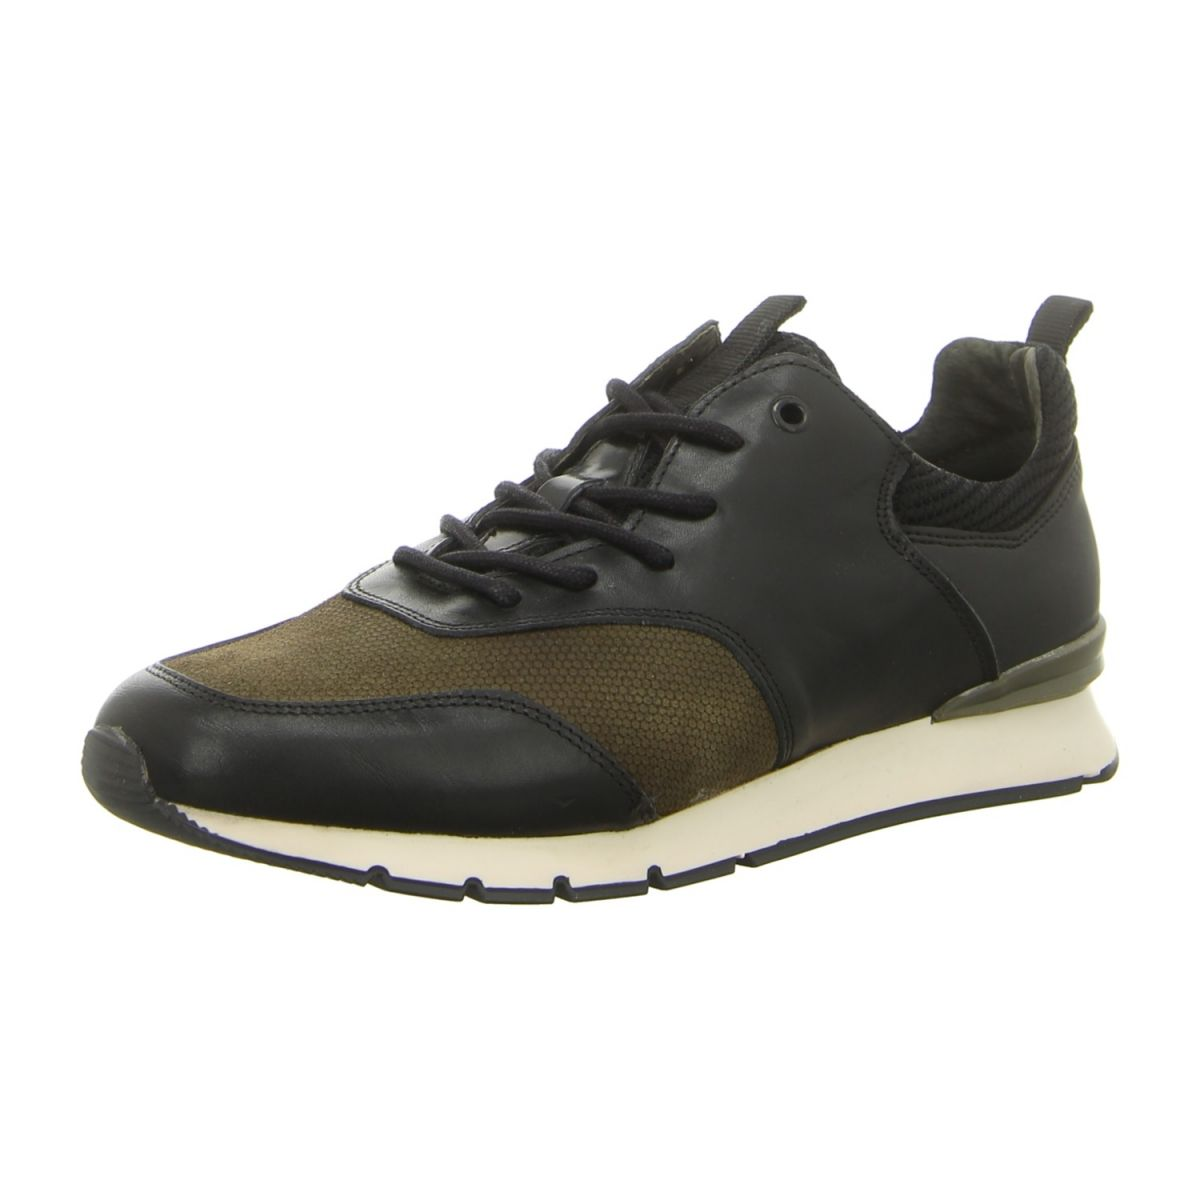 website for discount shoes for cheap pick up NEU: Coxx Borba Sneaker Mmonterey - MMONTEREY 100.02 - black ...